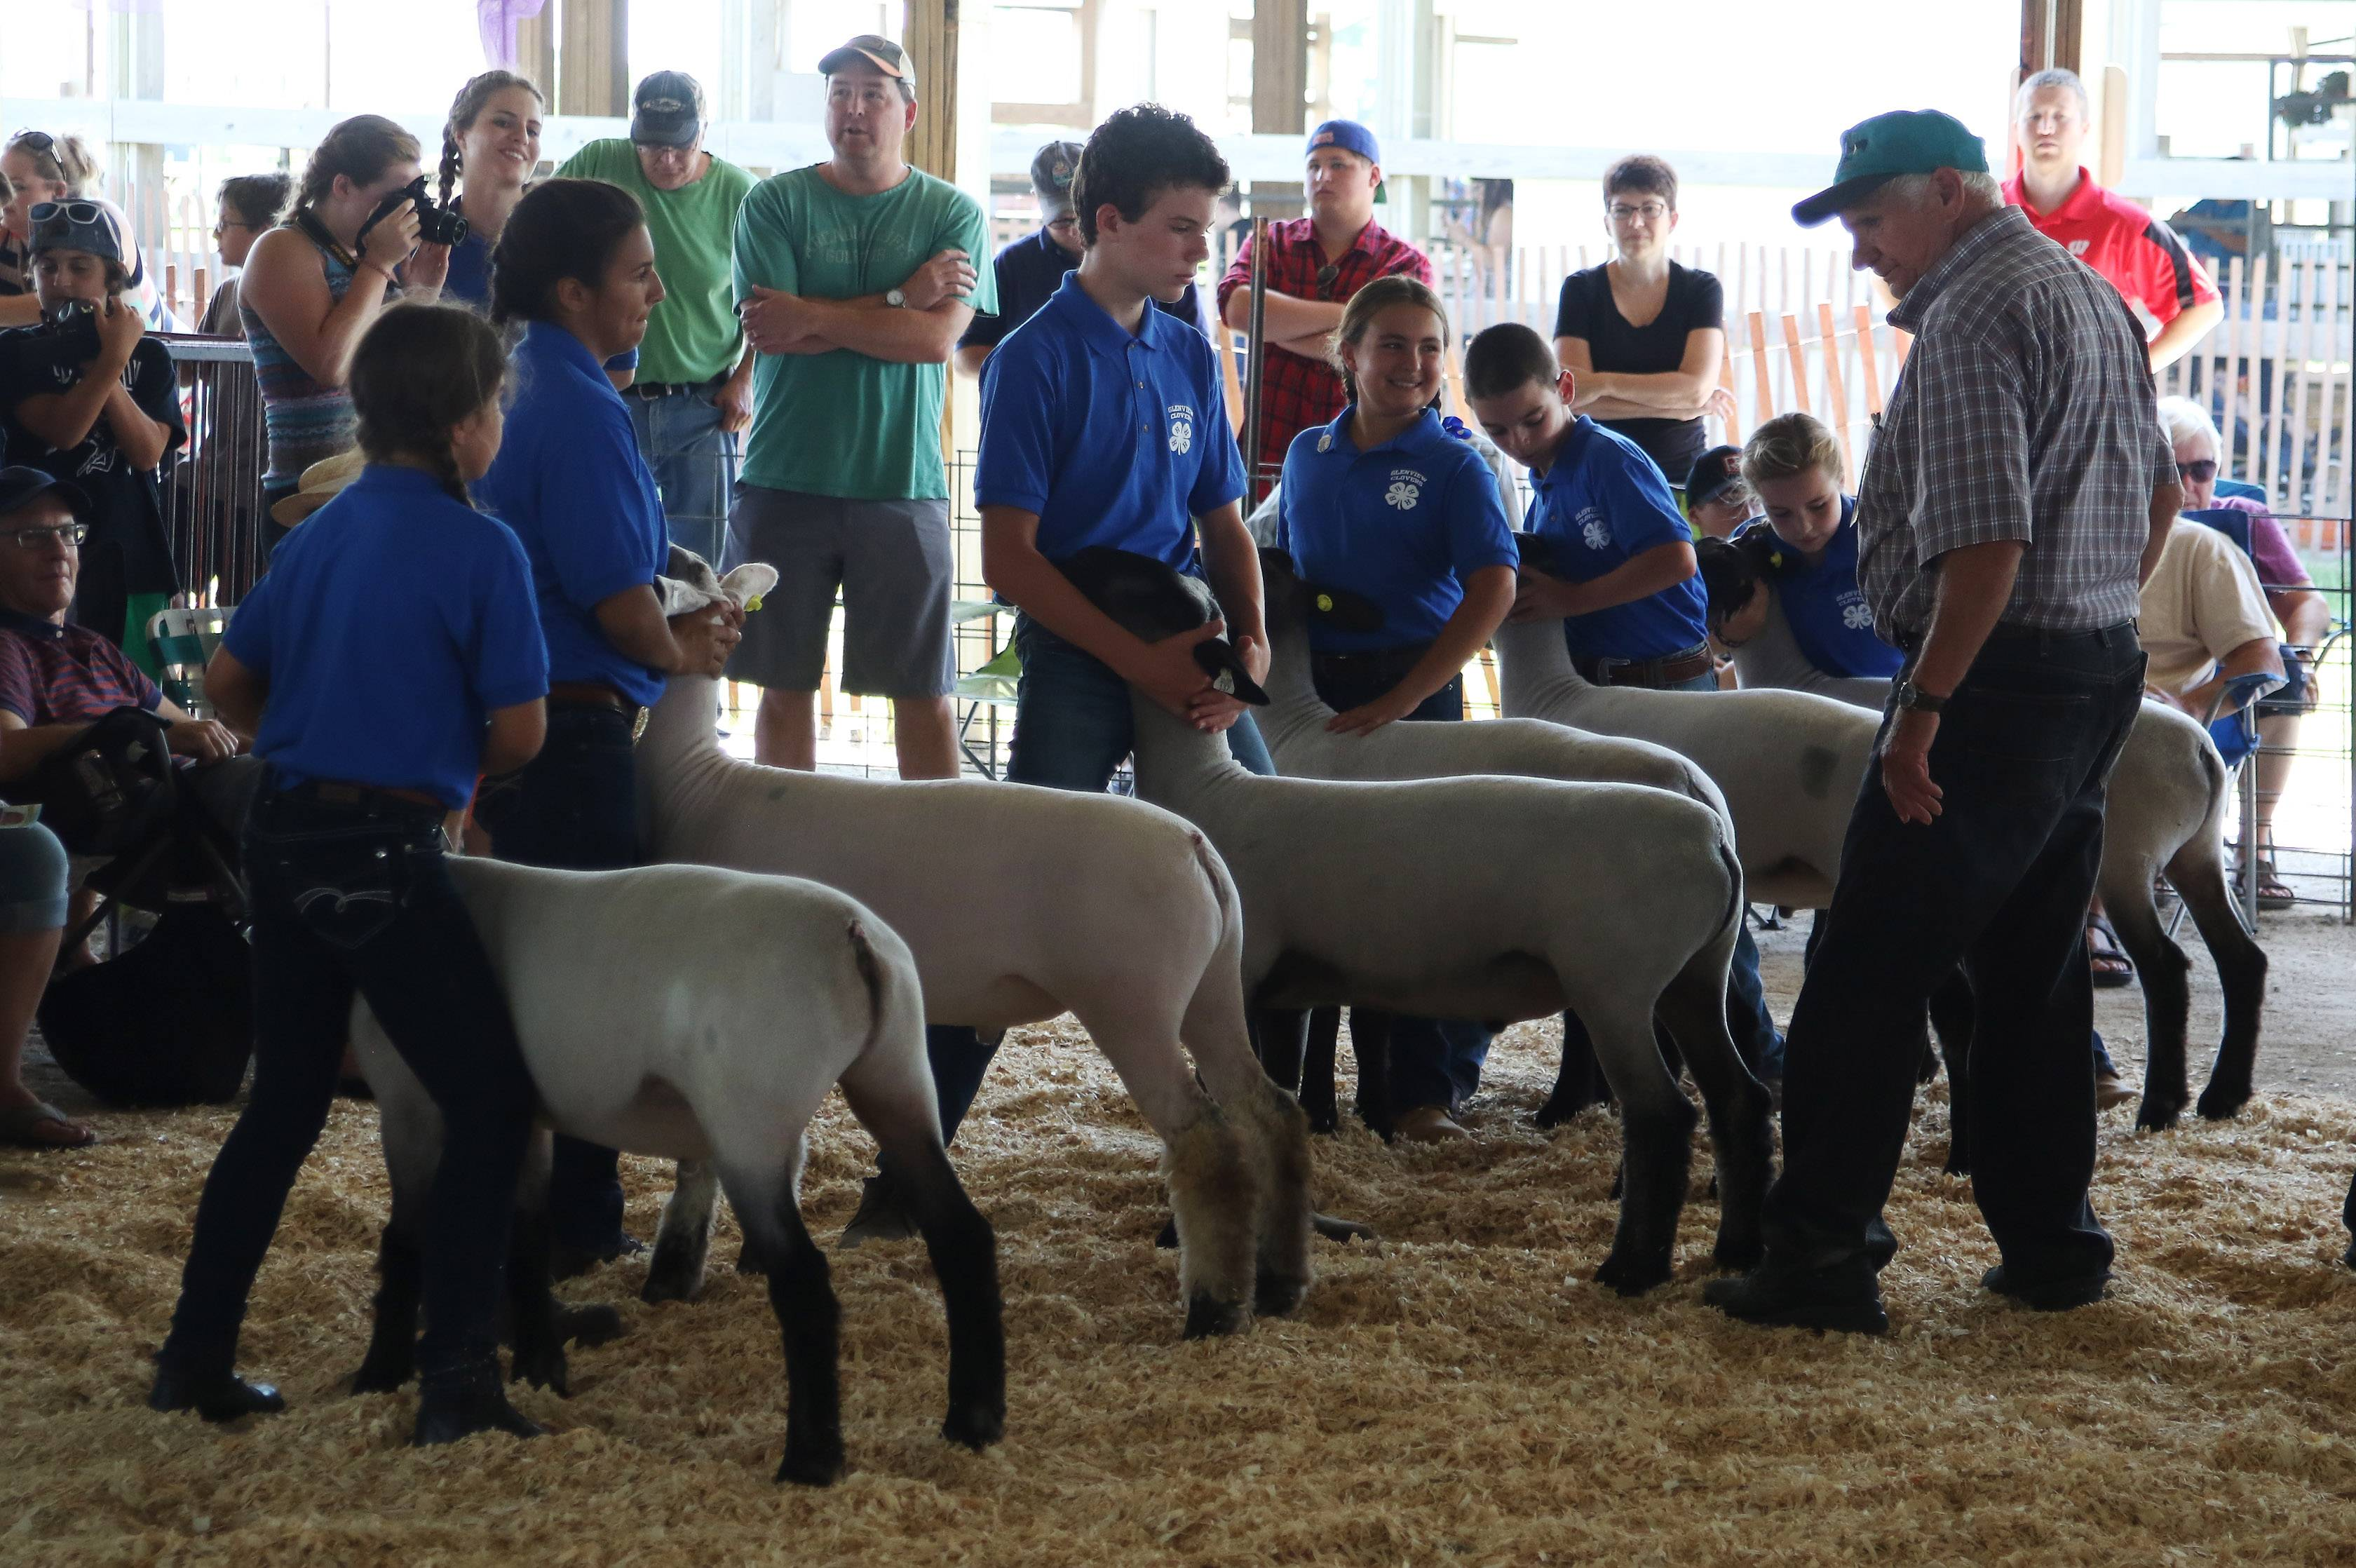 A judge examines a group of sheep during last year's Lake County Fair. This year's fair takes place July 26-30 at the Lake County Fairgrounds in Grayslake, featuring animal judging and demonstrations, live music, motor sports events and more.